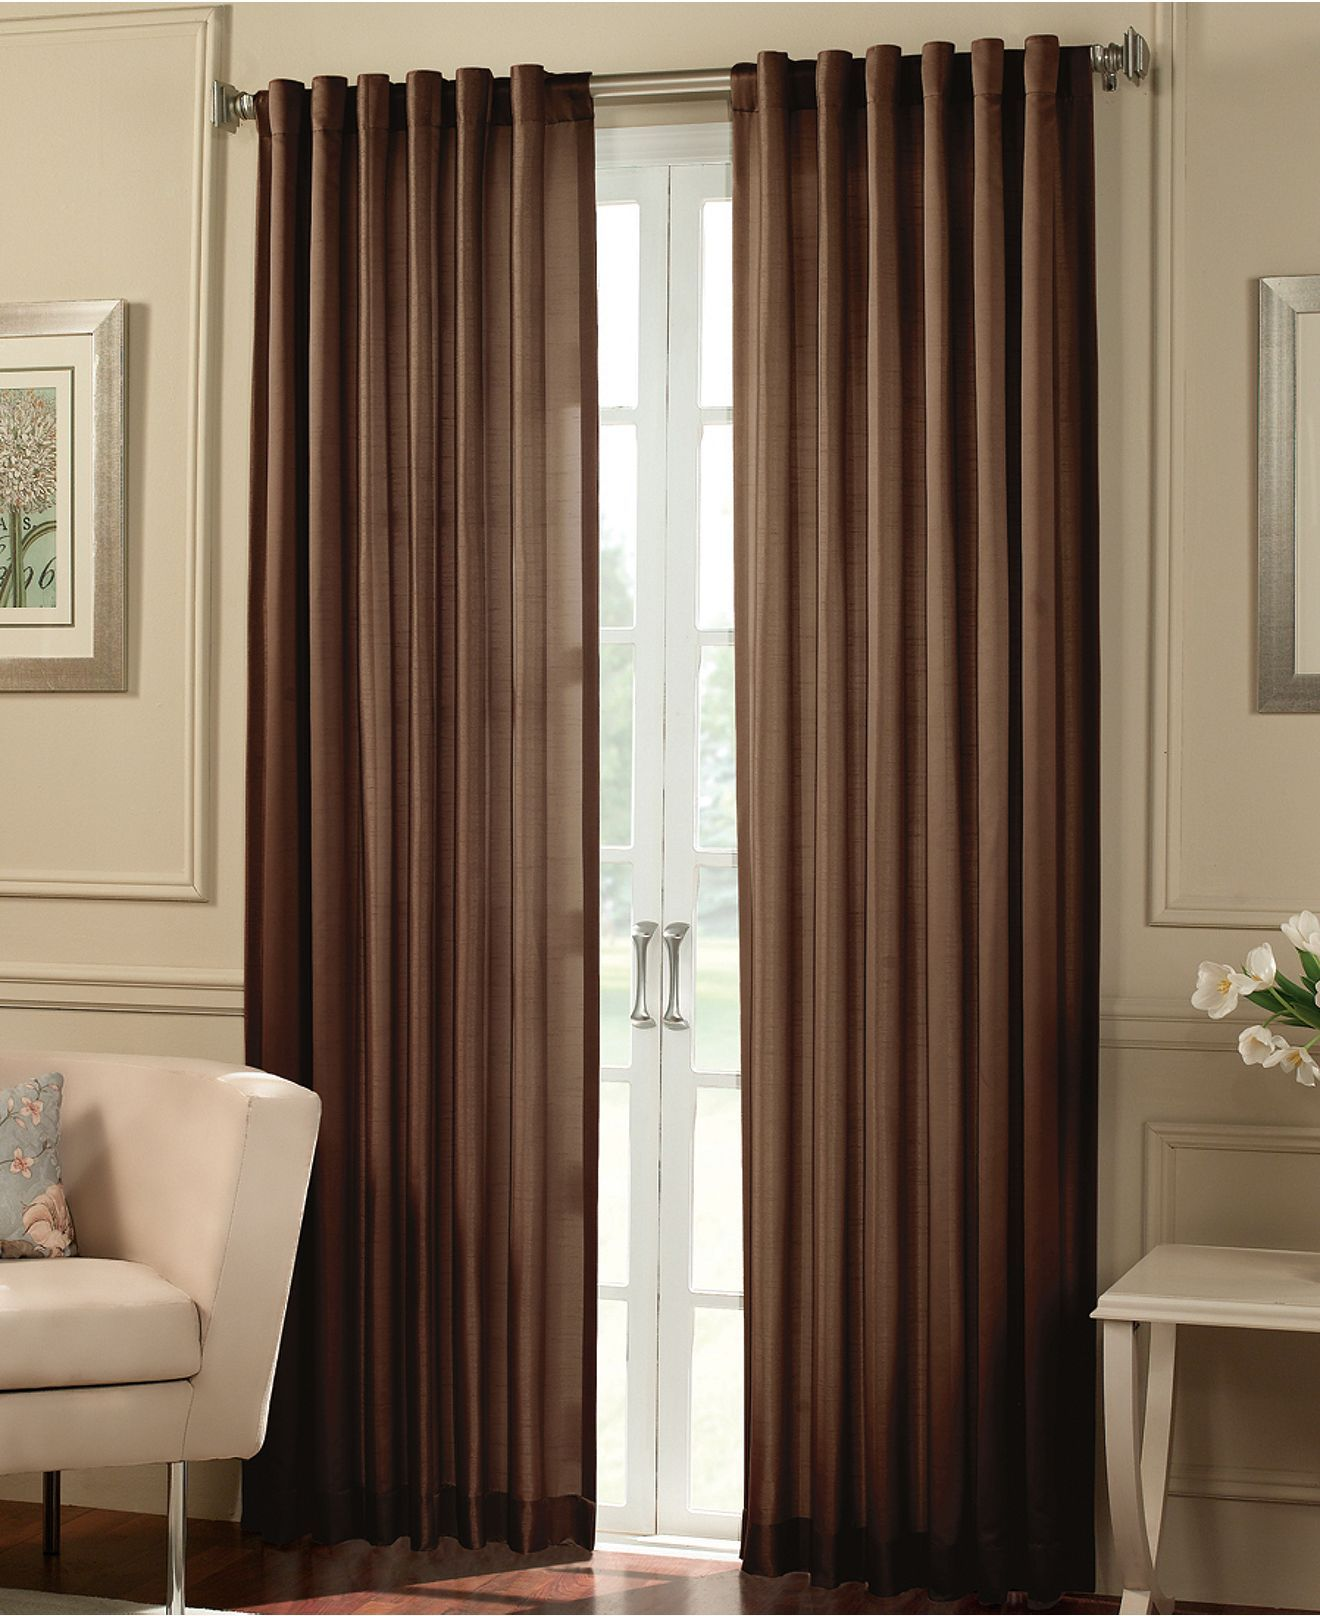 Peri Window Treatments Cooper 50 X 84 Panel Curtains Drapes